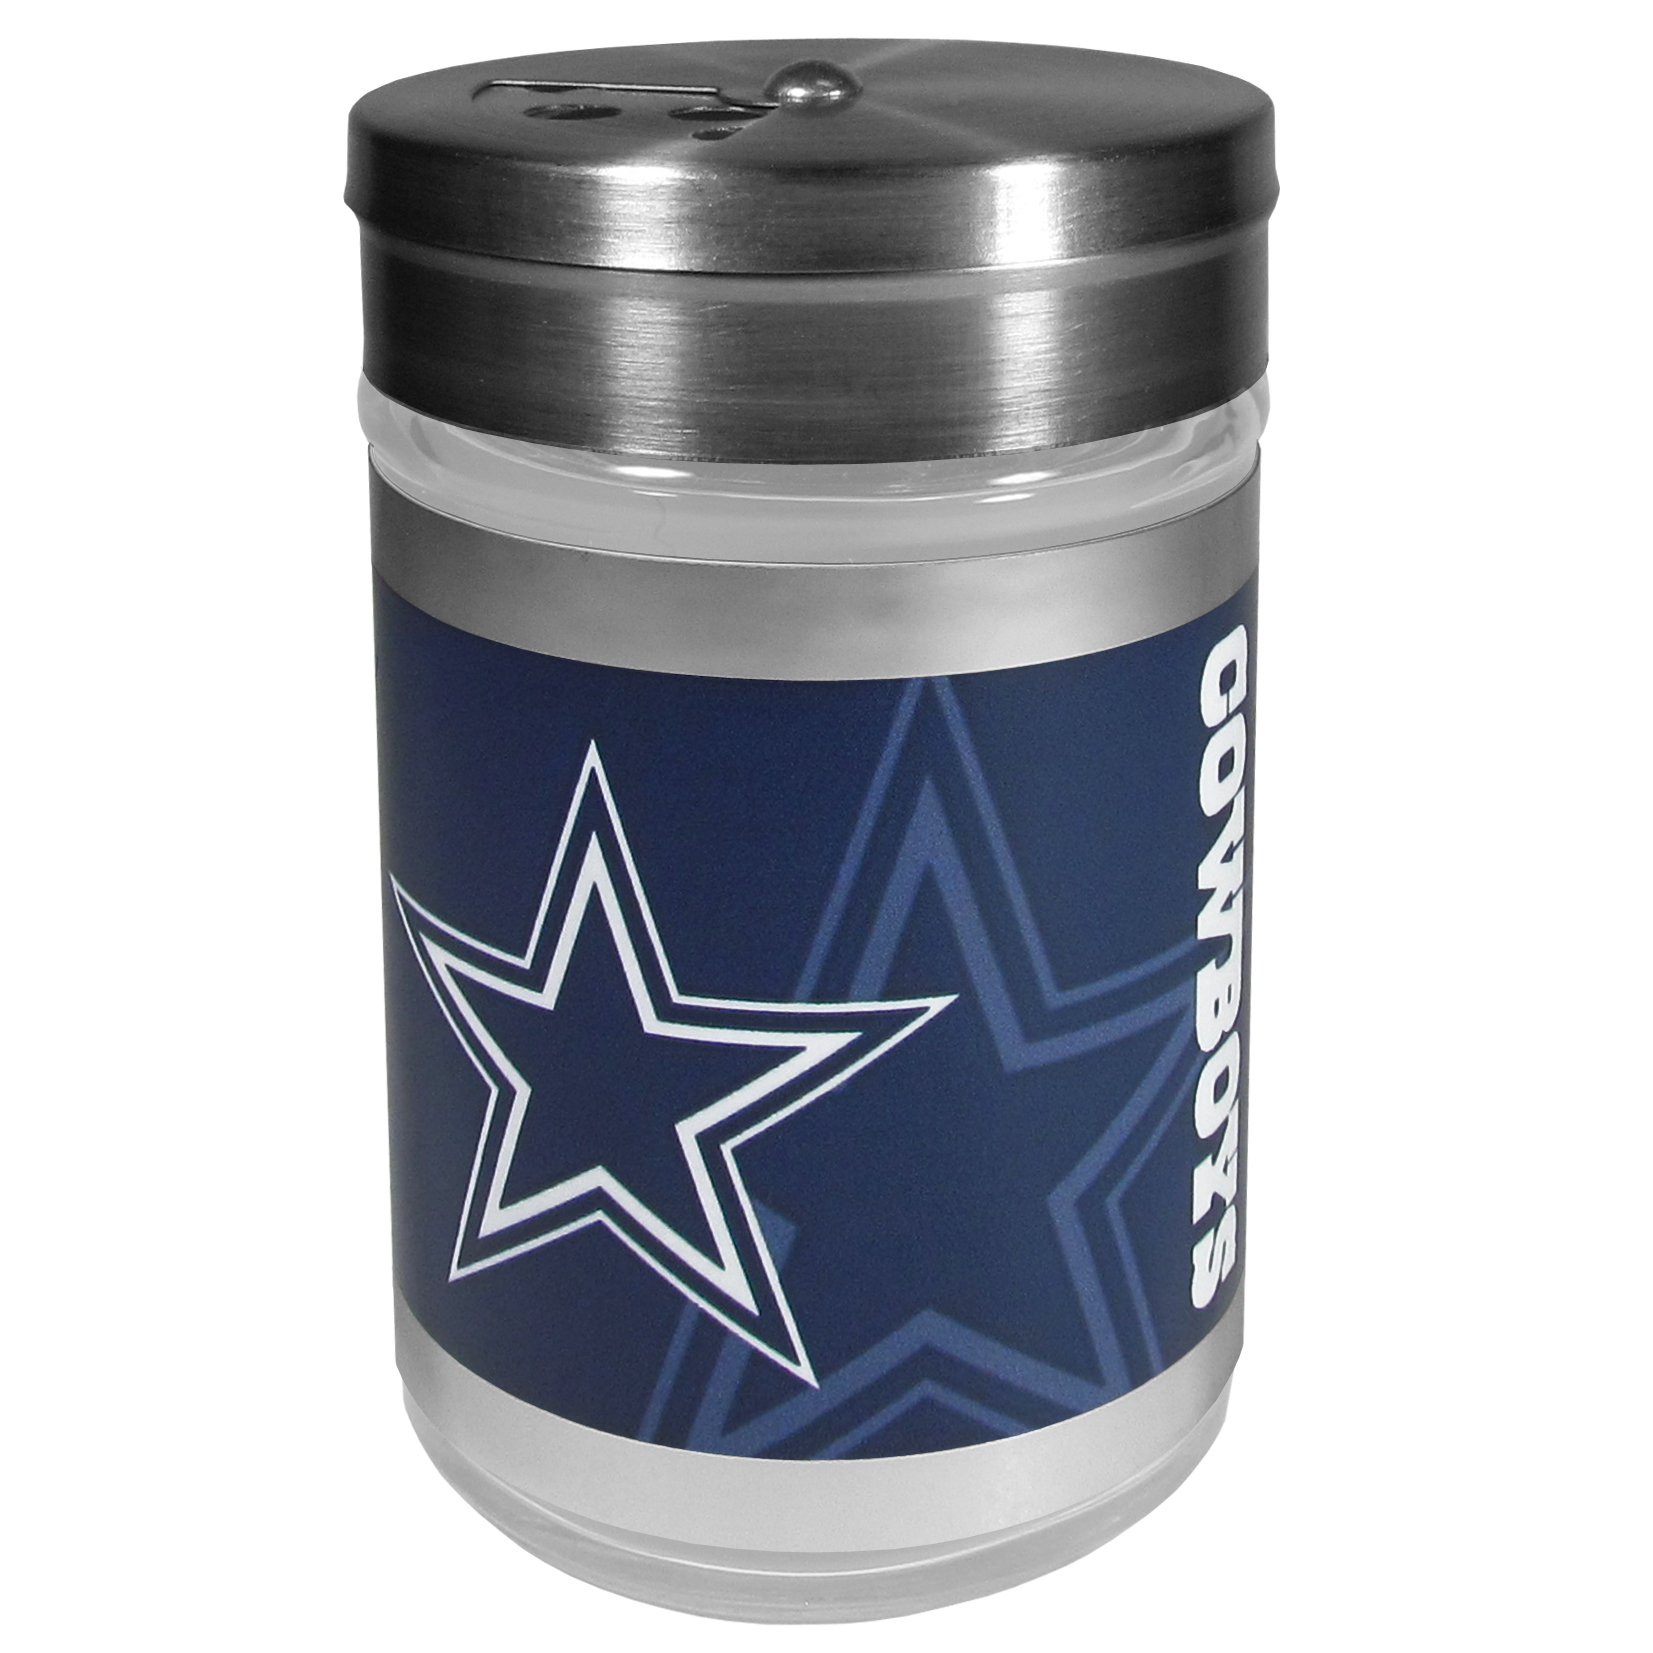 Dallas Cowboys Tailgater Season Shakers - Spice it up with our Dallas Cowboys tailgater season shakers! This compact shaker is 2 inch tall with a twist top that closes off the holes at the top making it perfect for travel preventing those messy spills. The shaker has wide holes perfect for keeping your pepper seeds or cheese toppings. The bright team graphics will make you the envy of the other fans while you are grilling up your tailgating goodies.